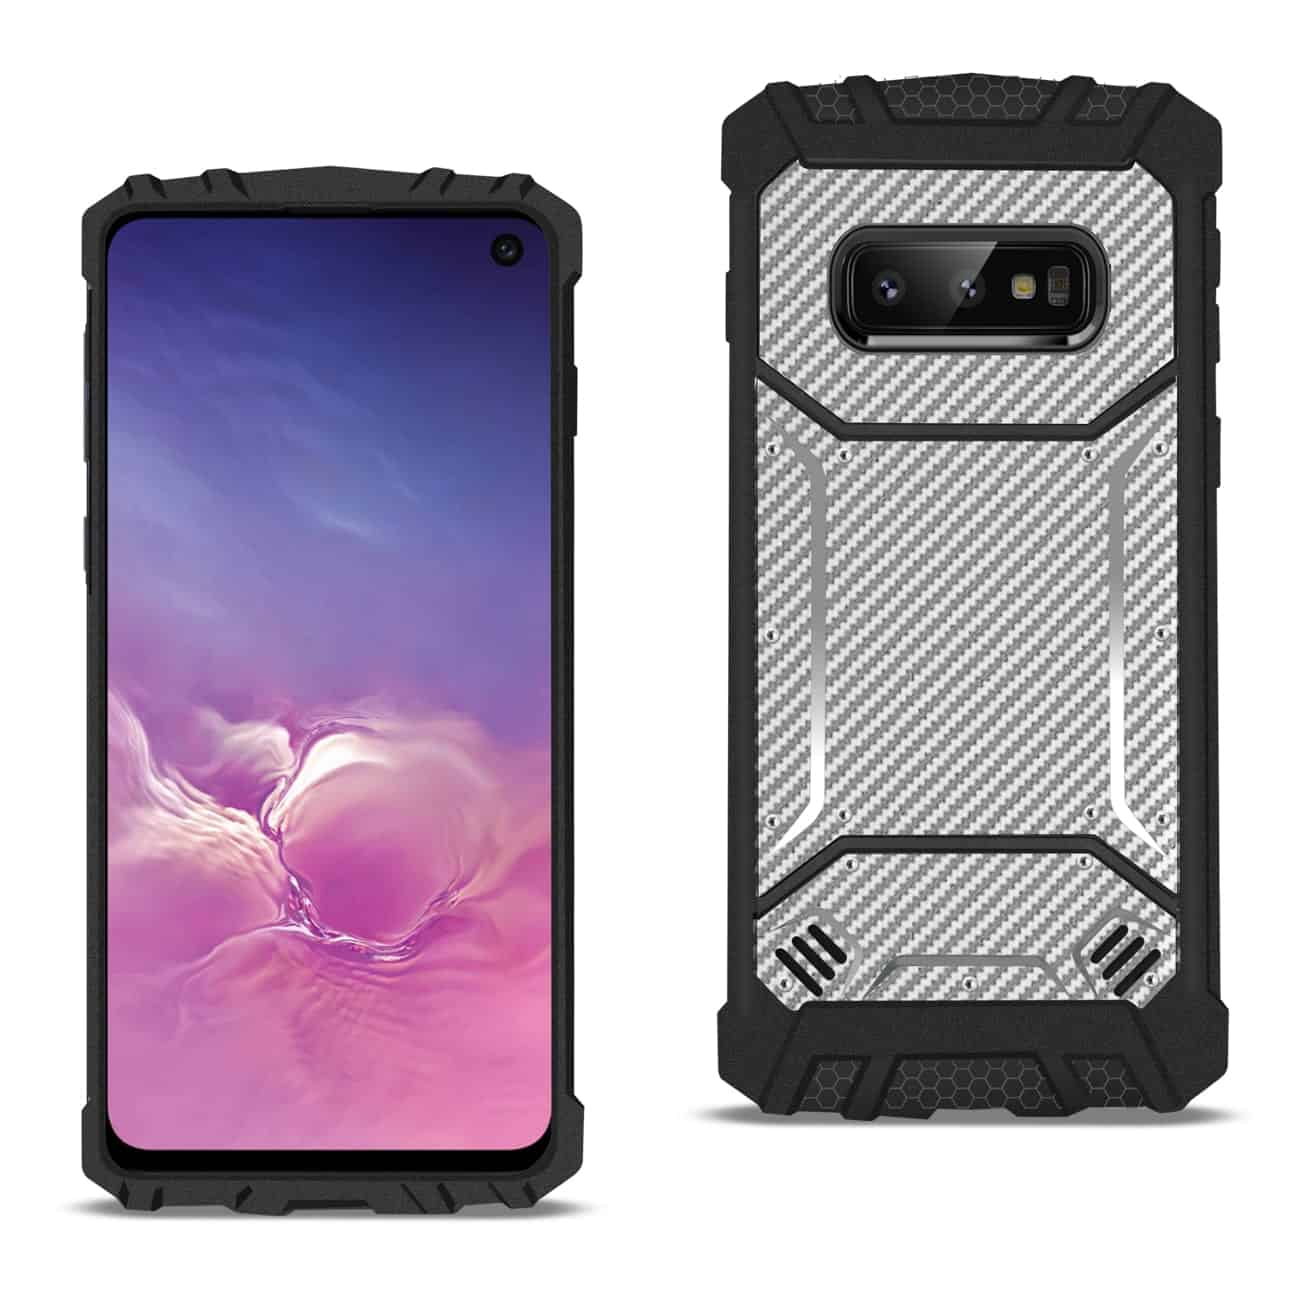 SAMSUNG GALAXY S10 Lite Carbon Fiber Hard-shell Case In Gray